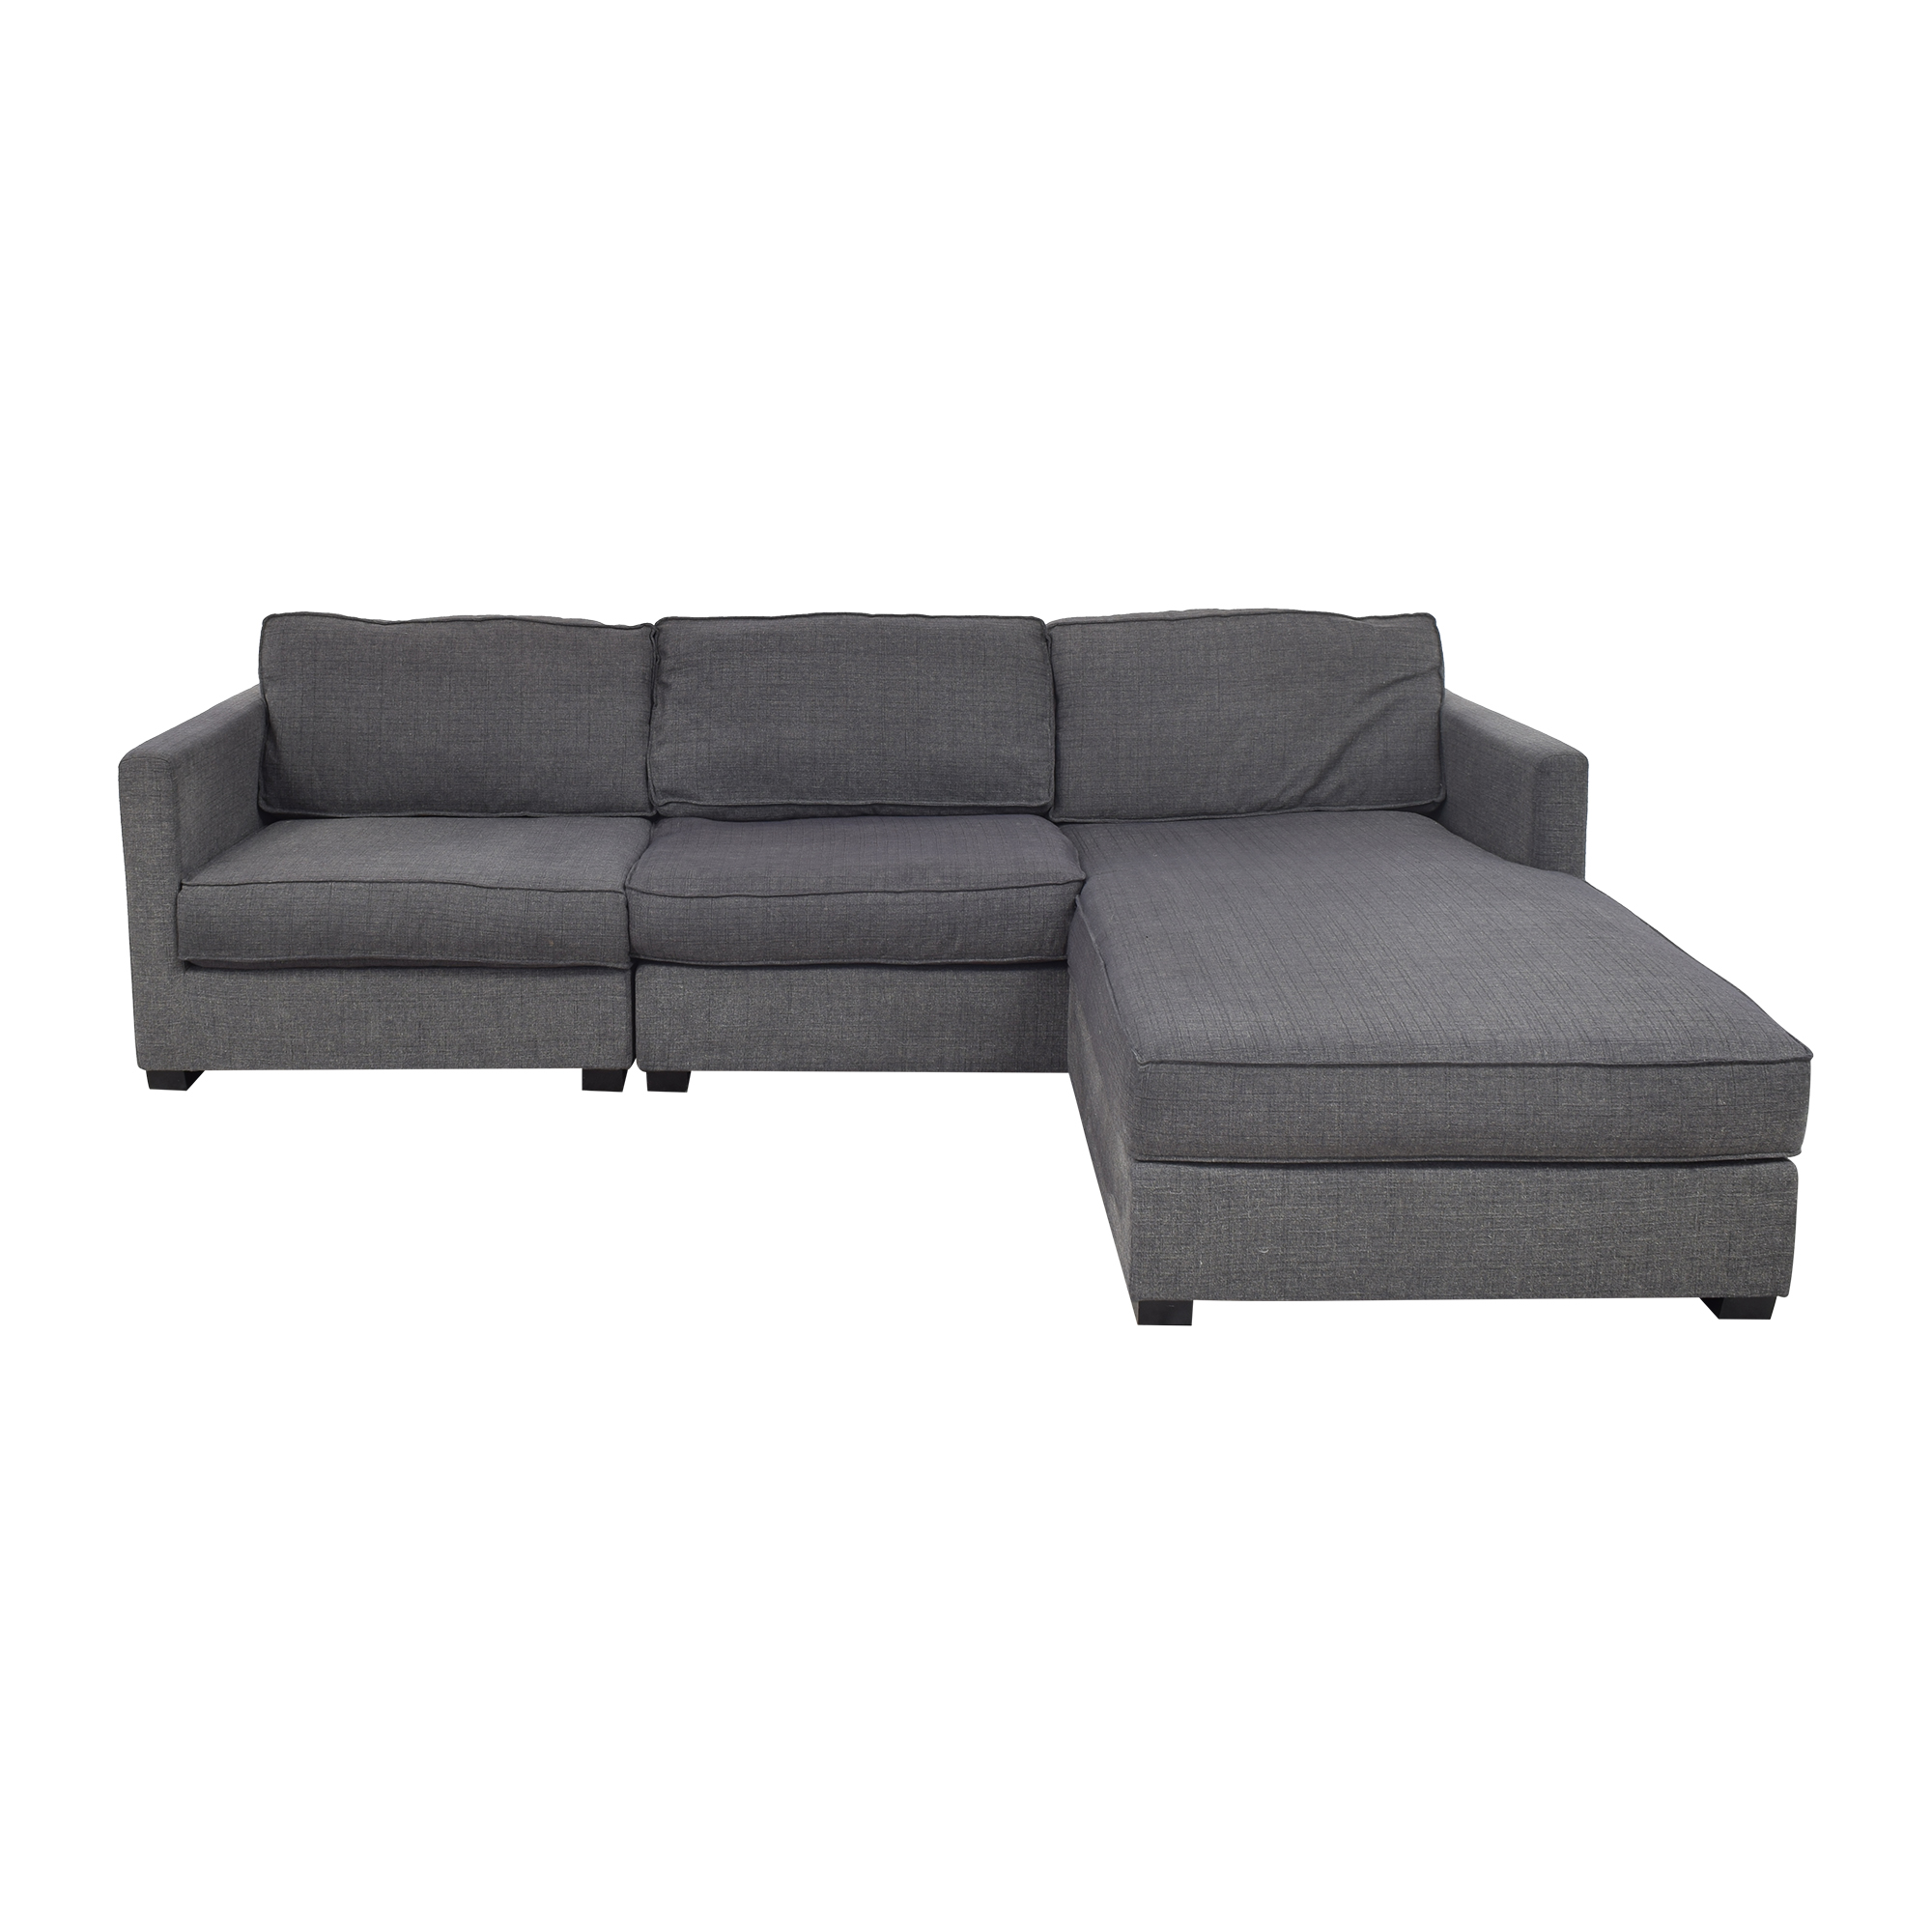 Gus Modern Gus Modern Parkdale Chaise Sectional Sofa Sectionals